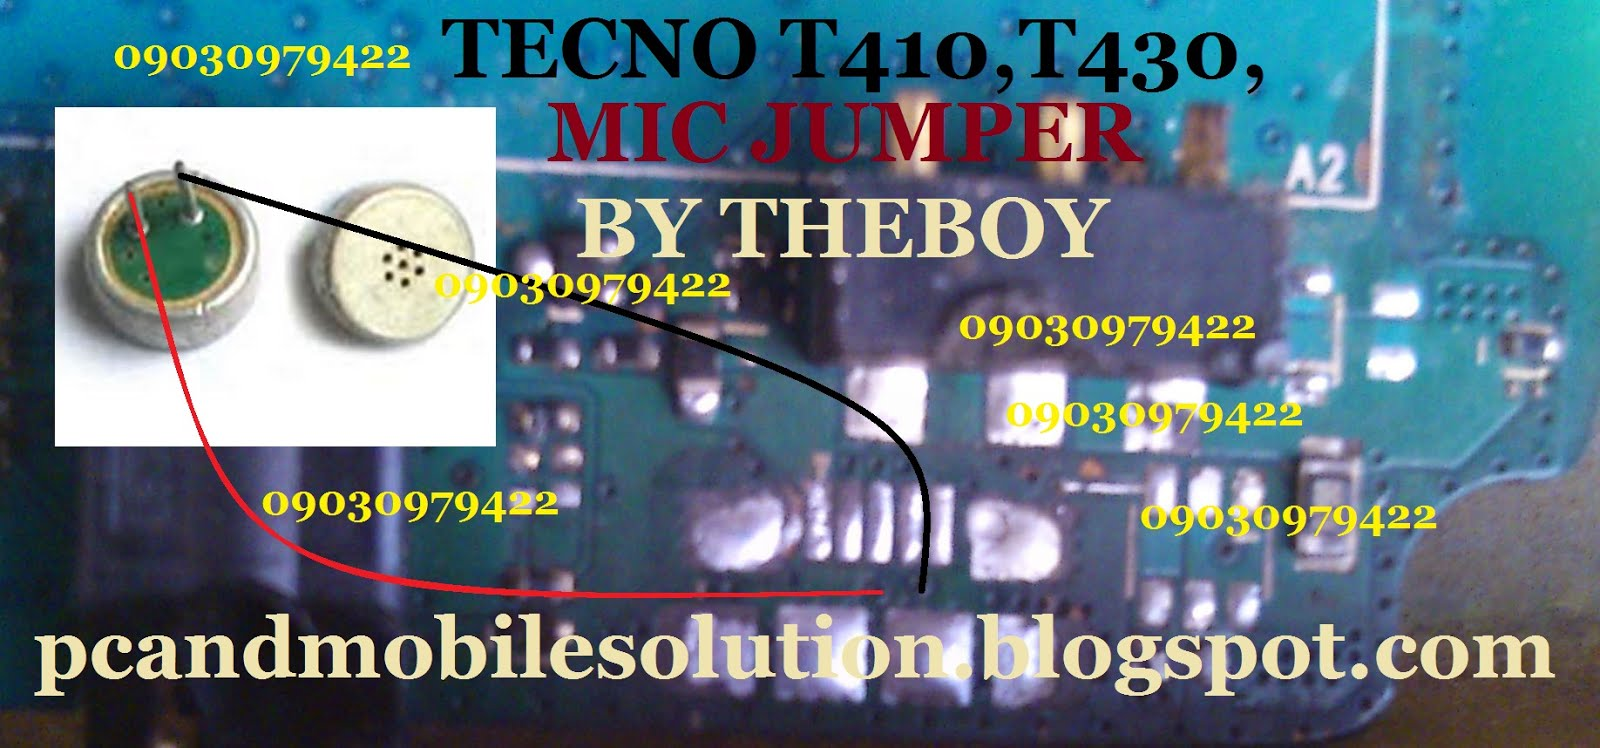 TECNO T410,T420,T430 MIC WAY AND SOLUTION - Jumare's blog